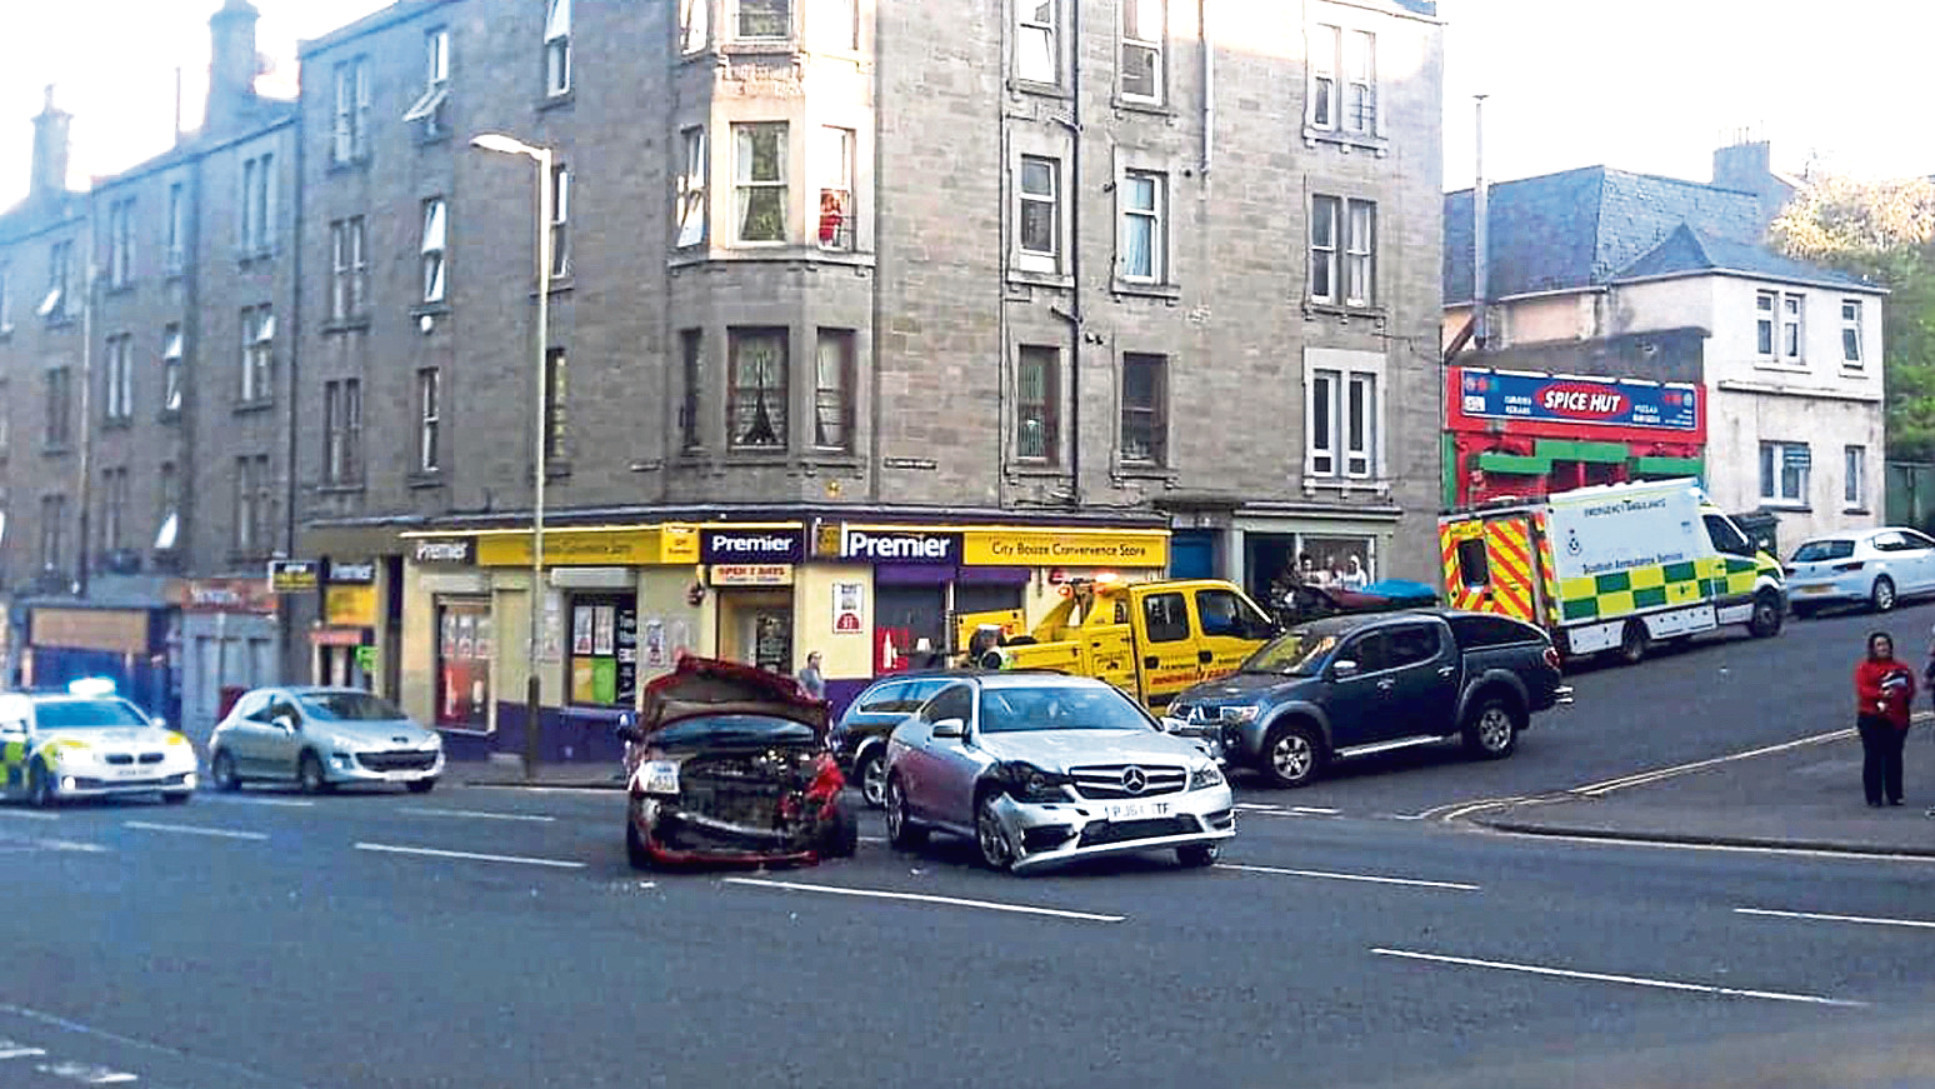 Emergency services attended the incident, which took place on Lochee Road at the junction with Cleghorn Street.